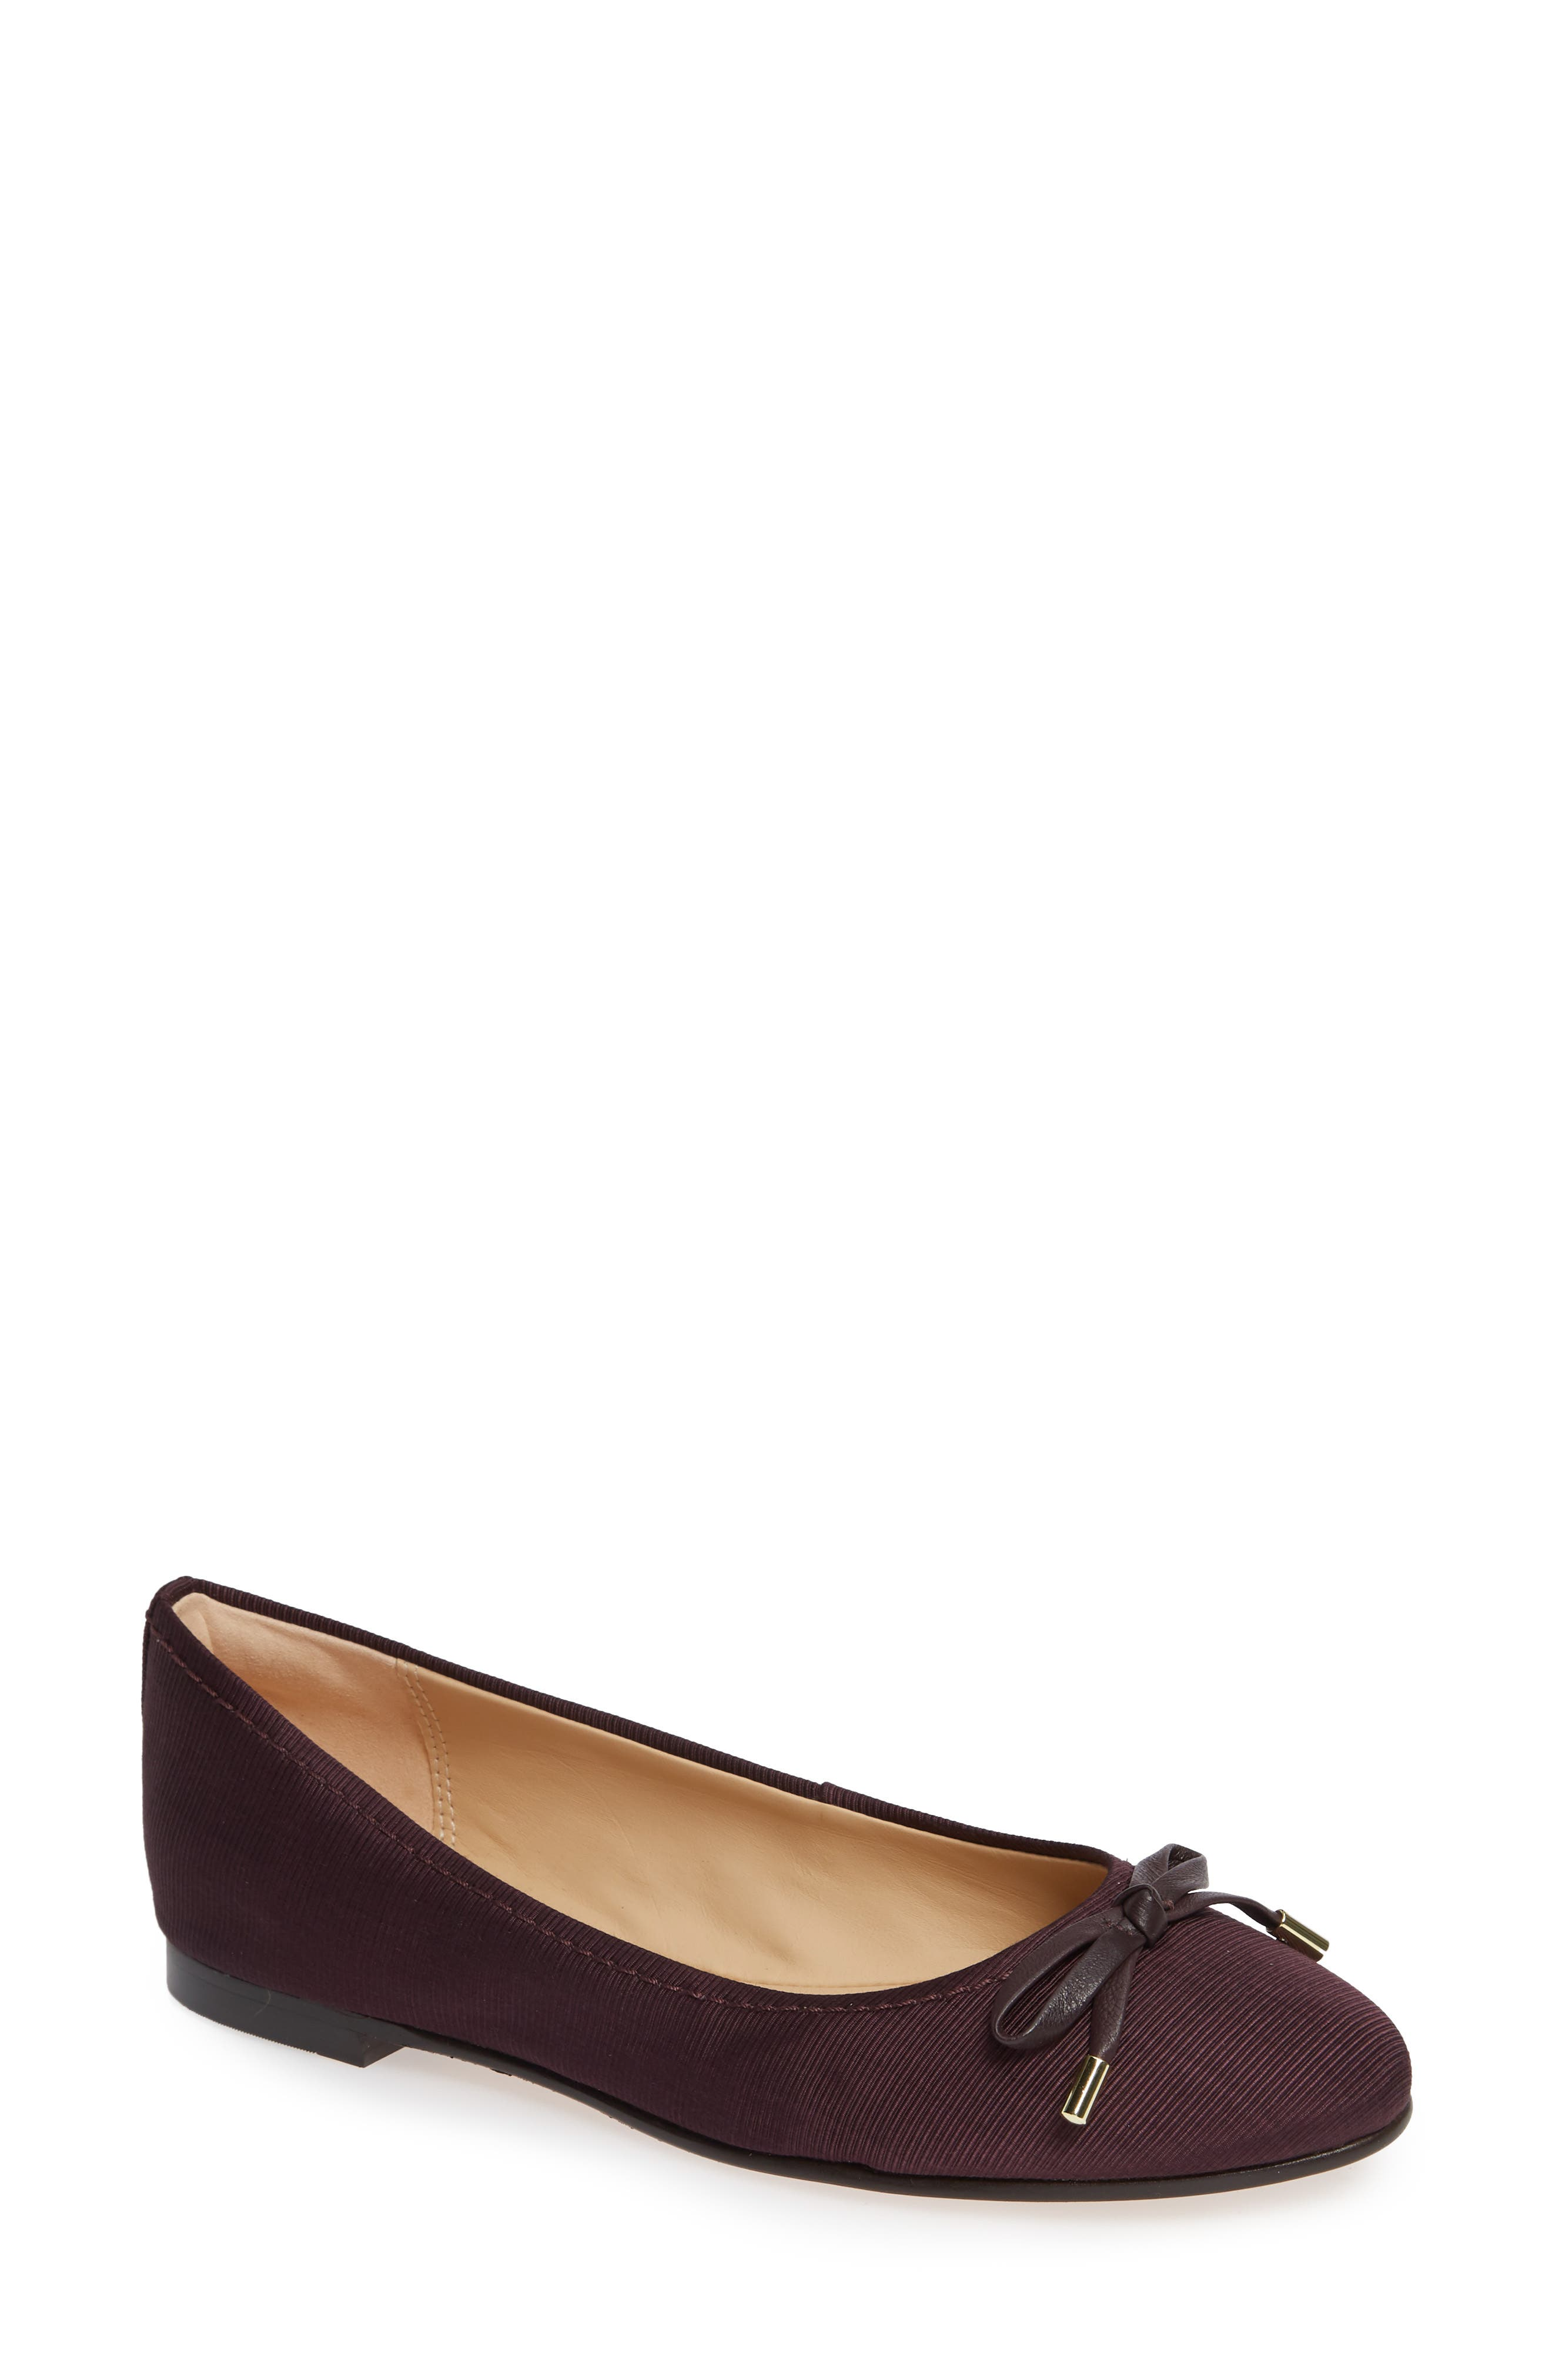 Grace Lily Flat,                             Main thumbnail 1, color,                             930